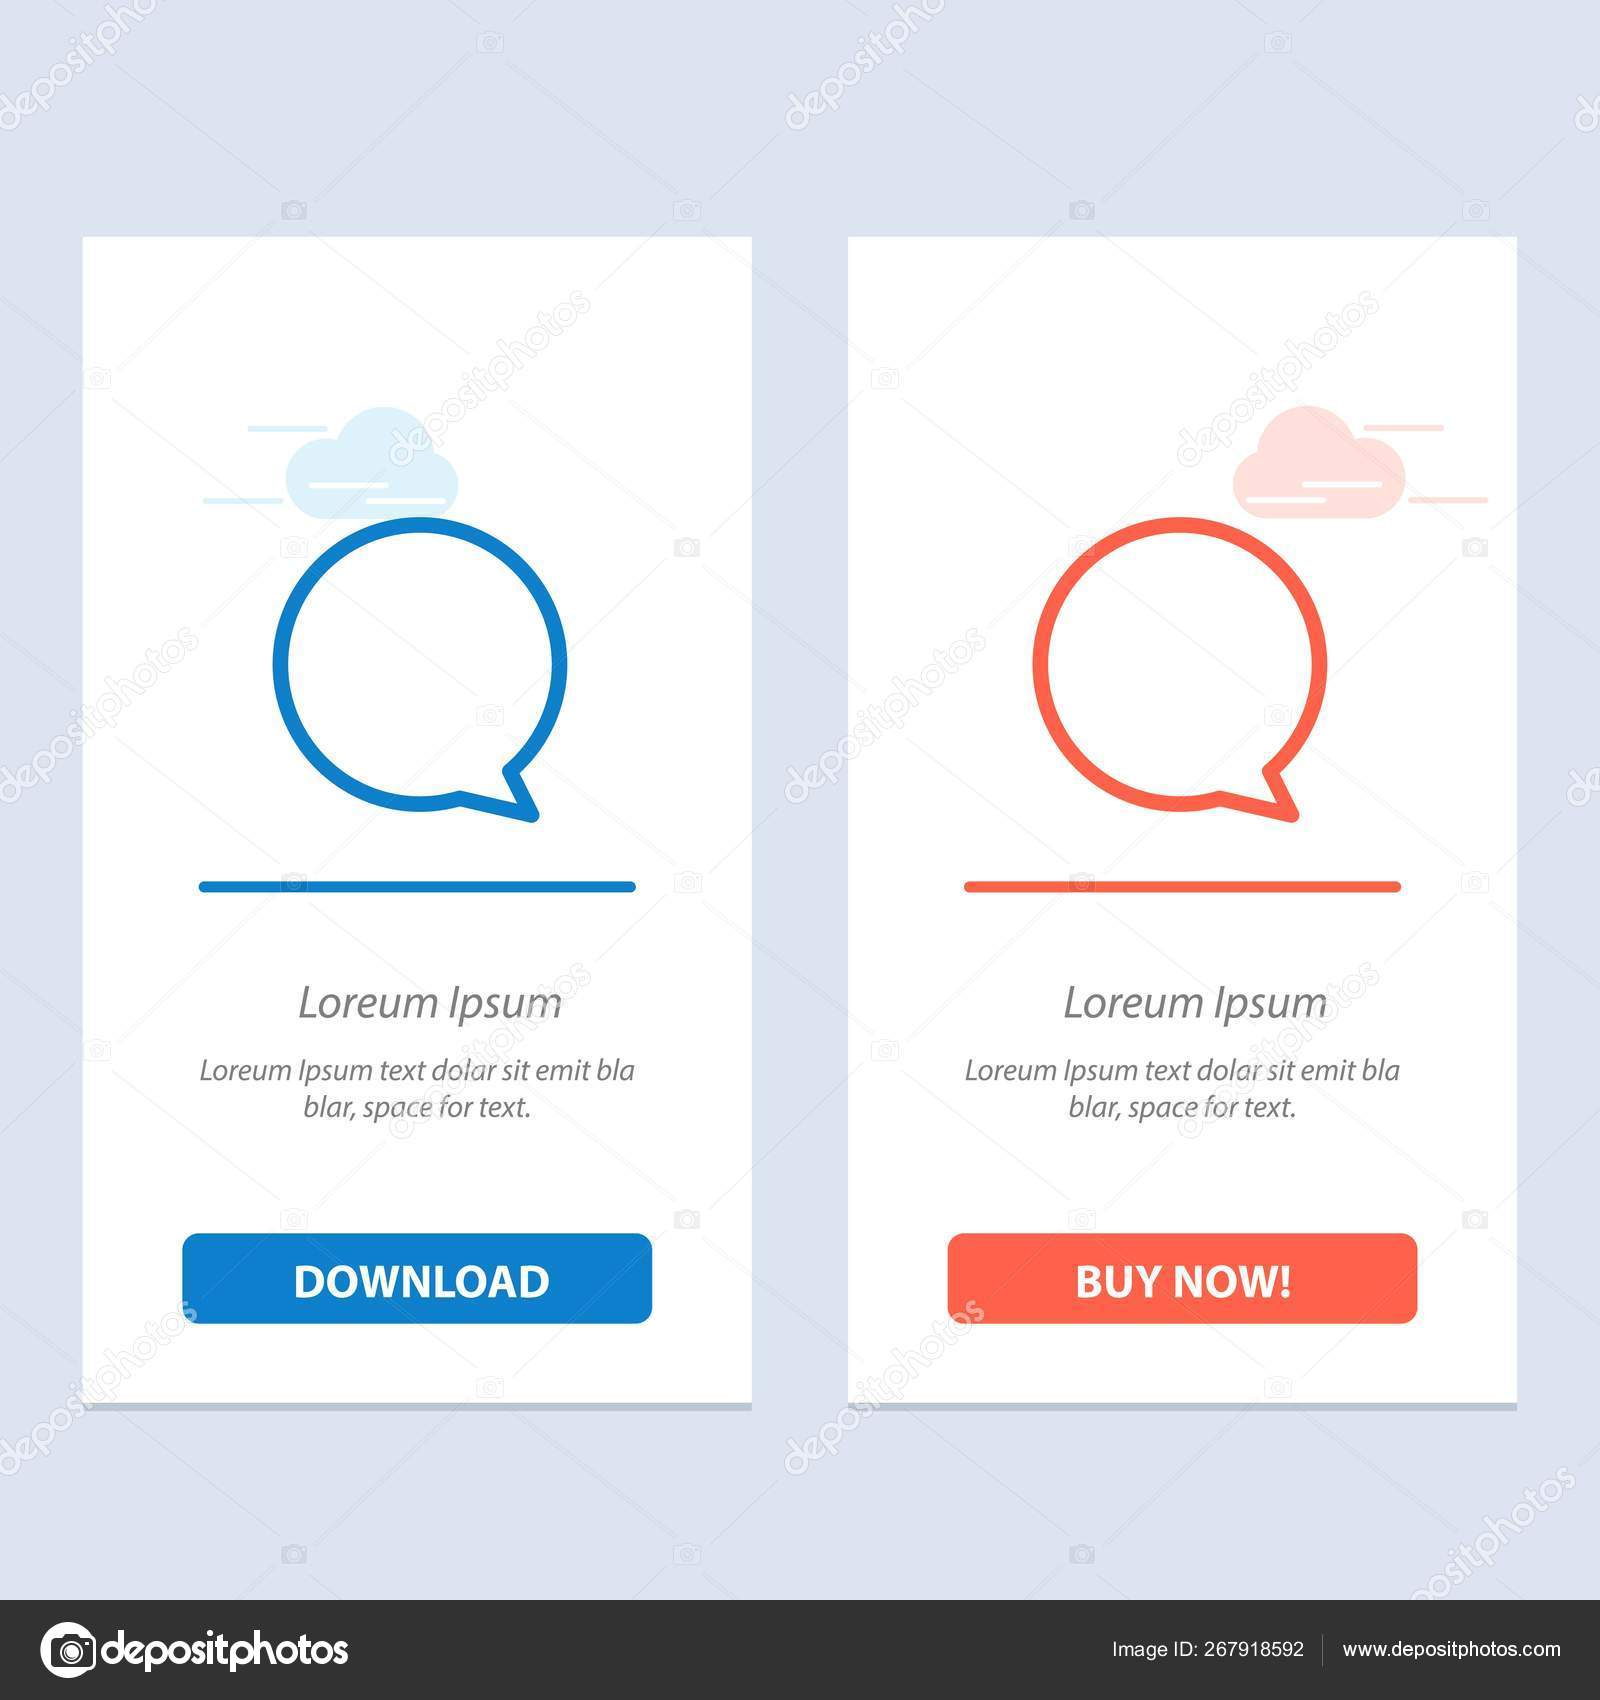 Chat, Instagram, Interface Blue and Red Download and Buy Now we